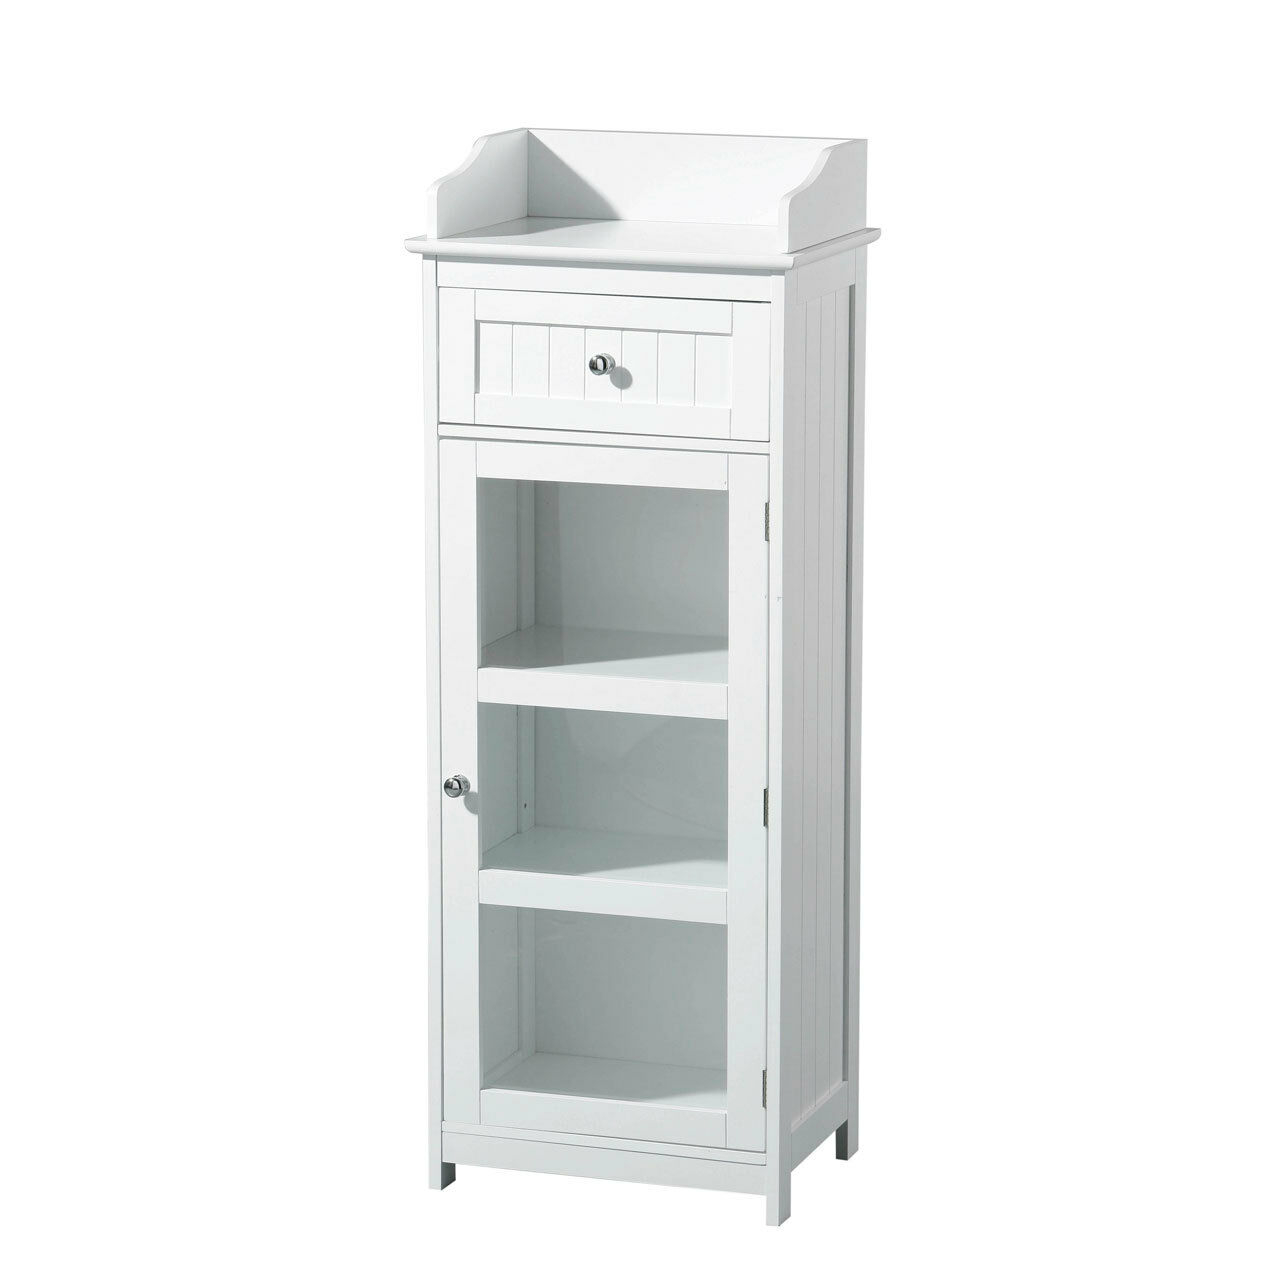 Details About Single Glass Door Bathroom Storage Cabinet White Wooden 3 Inner Shelf Drawer New throughout proportions 1280 X 1280